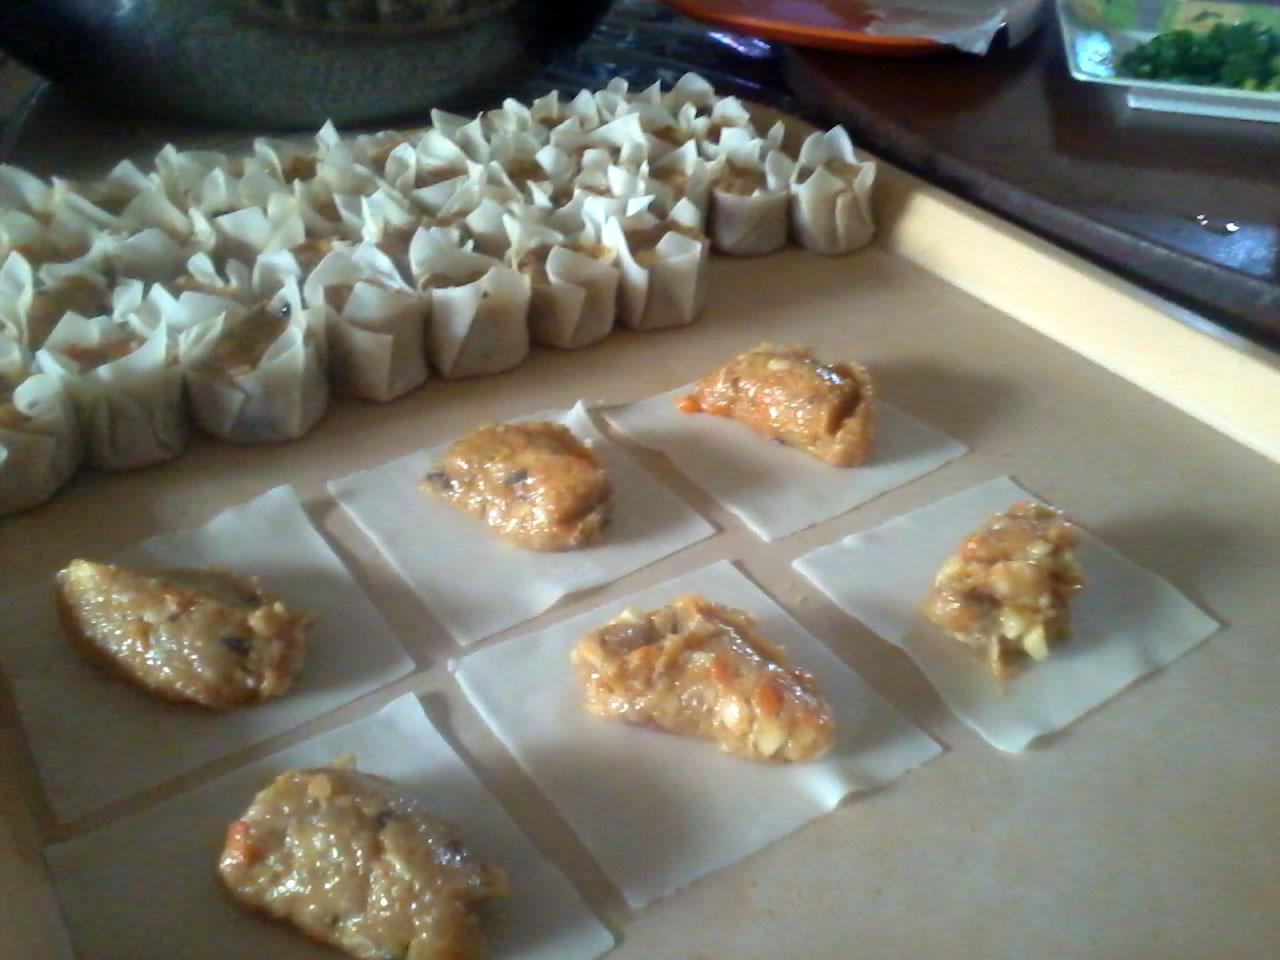 Every woman my best seller siomai recipe siomai mixture on wrappers before wrapping see wrapped siomai in the background forumfinder Image collections